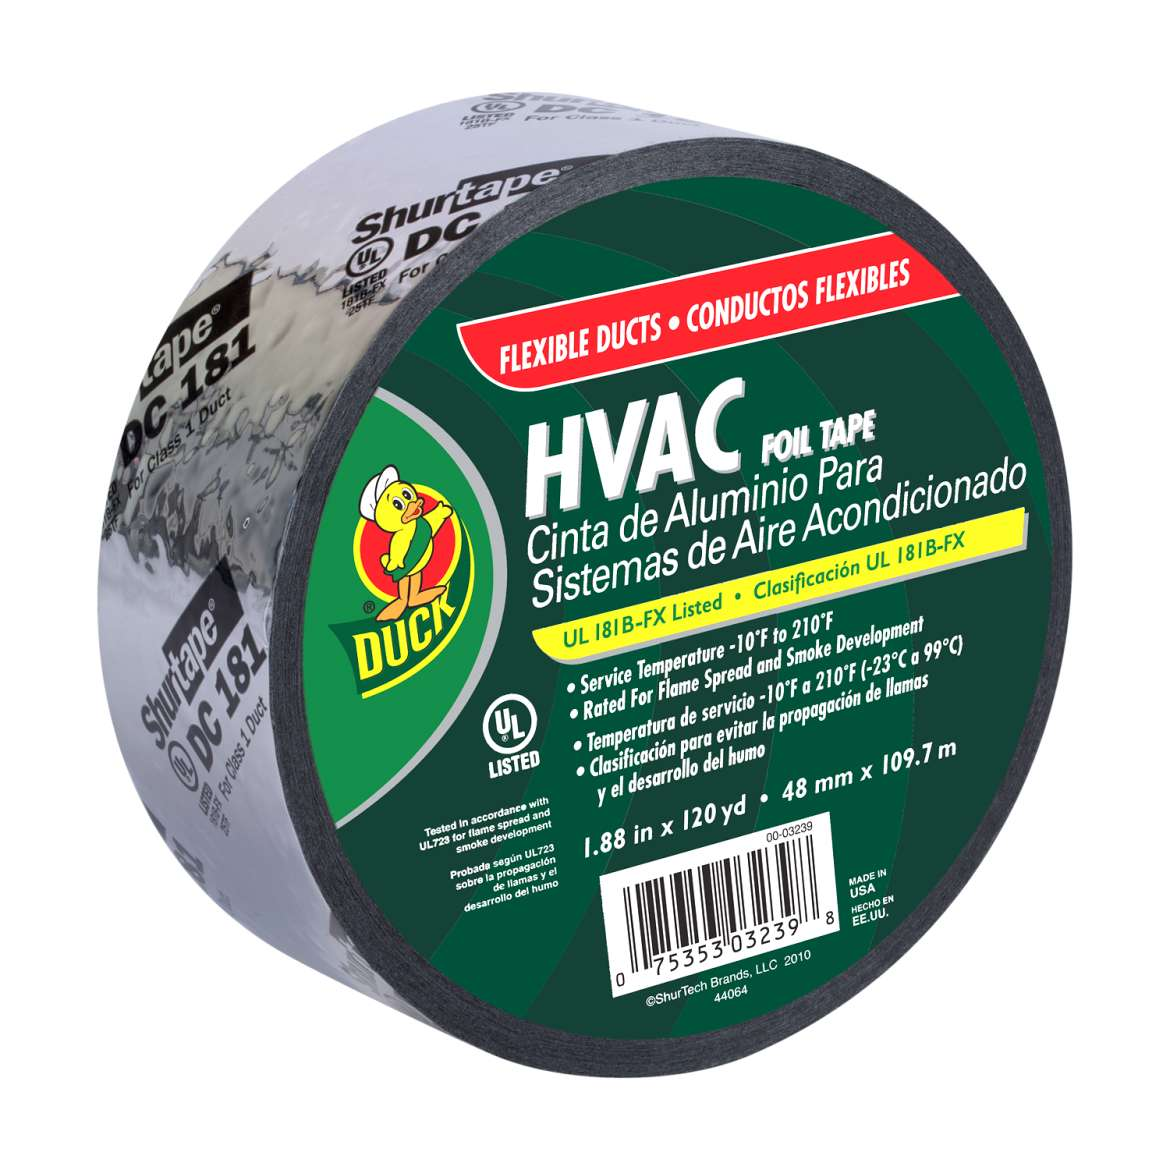 Duck® Brand HVAC Foil Tape for Flexible Ducts - Silver, 1.88 in. x 120 yd. Image